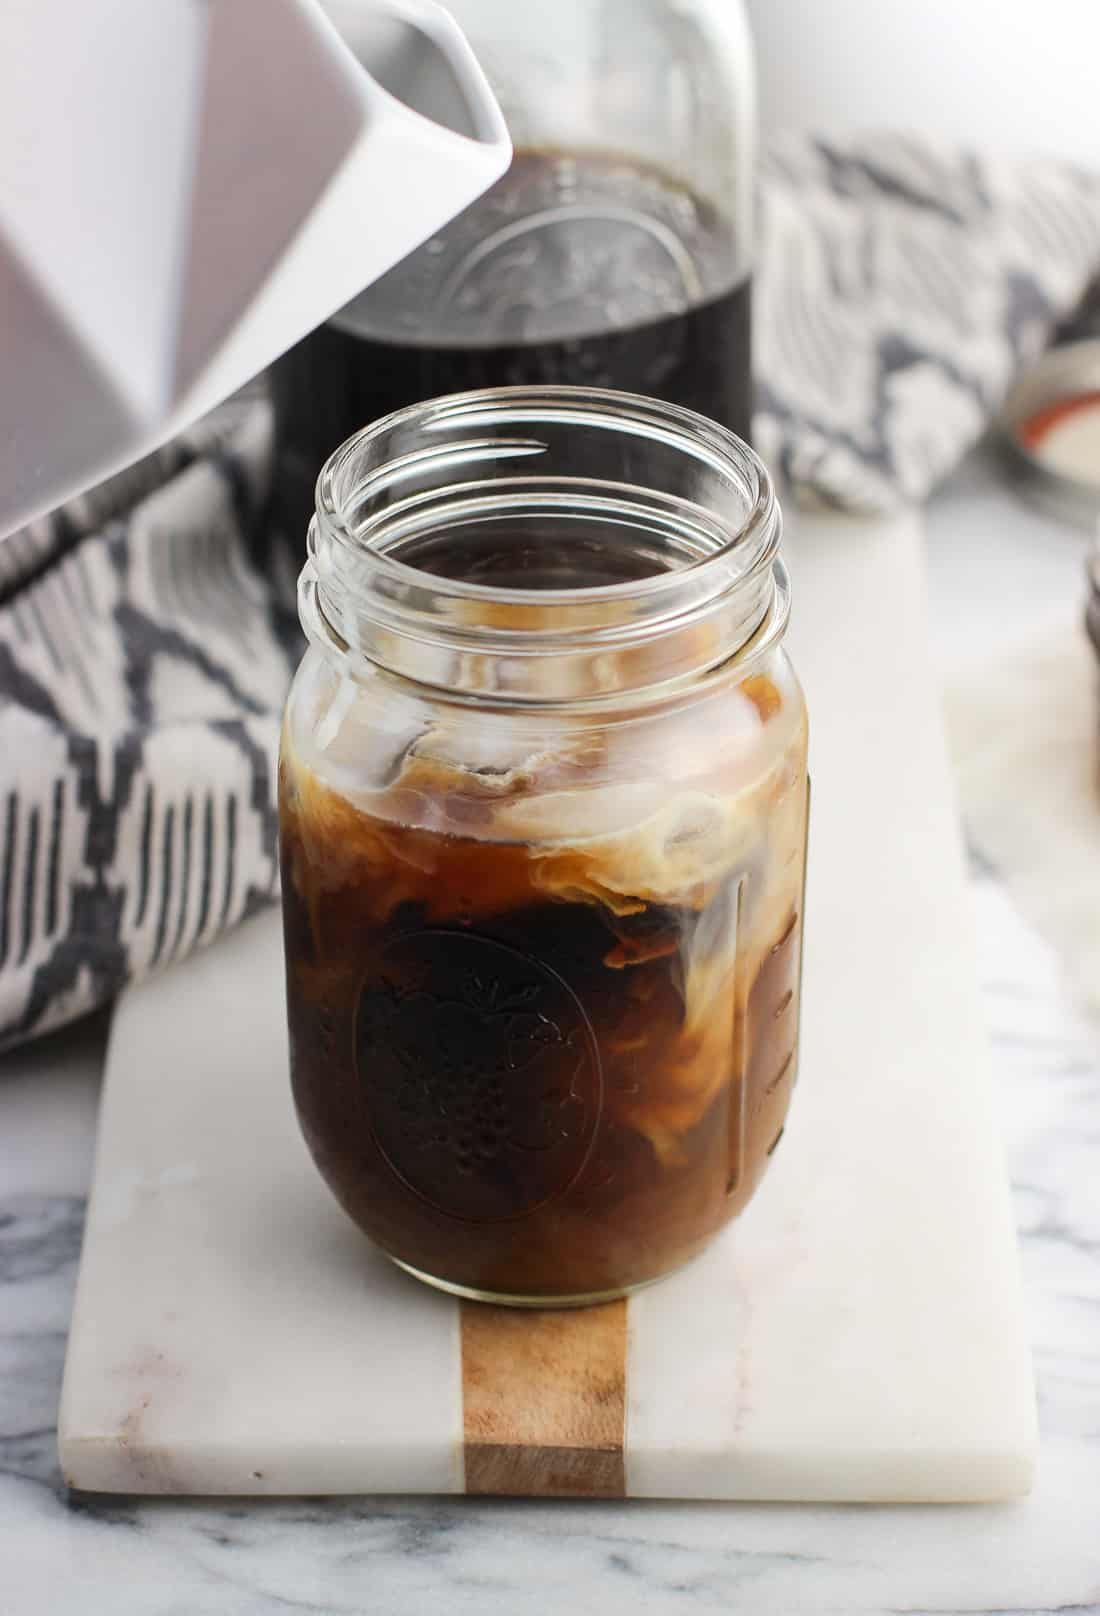 A ceramic milk carton hovering above a mason jar of coffee swirled with milk after pouring some in